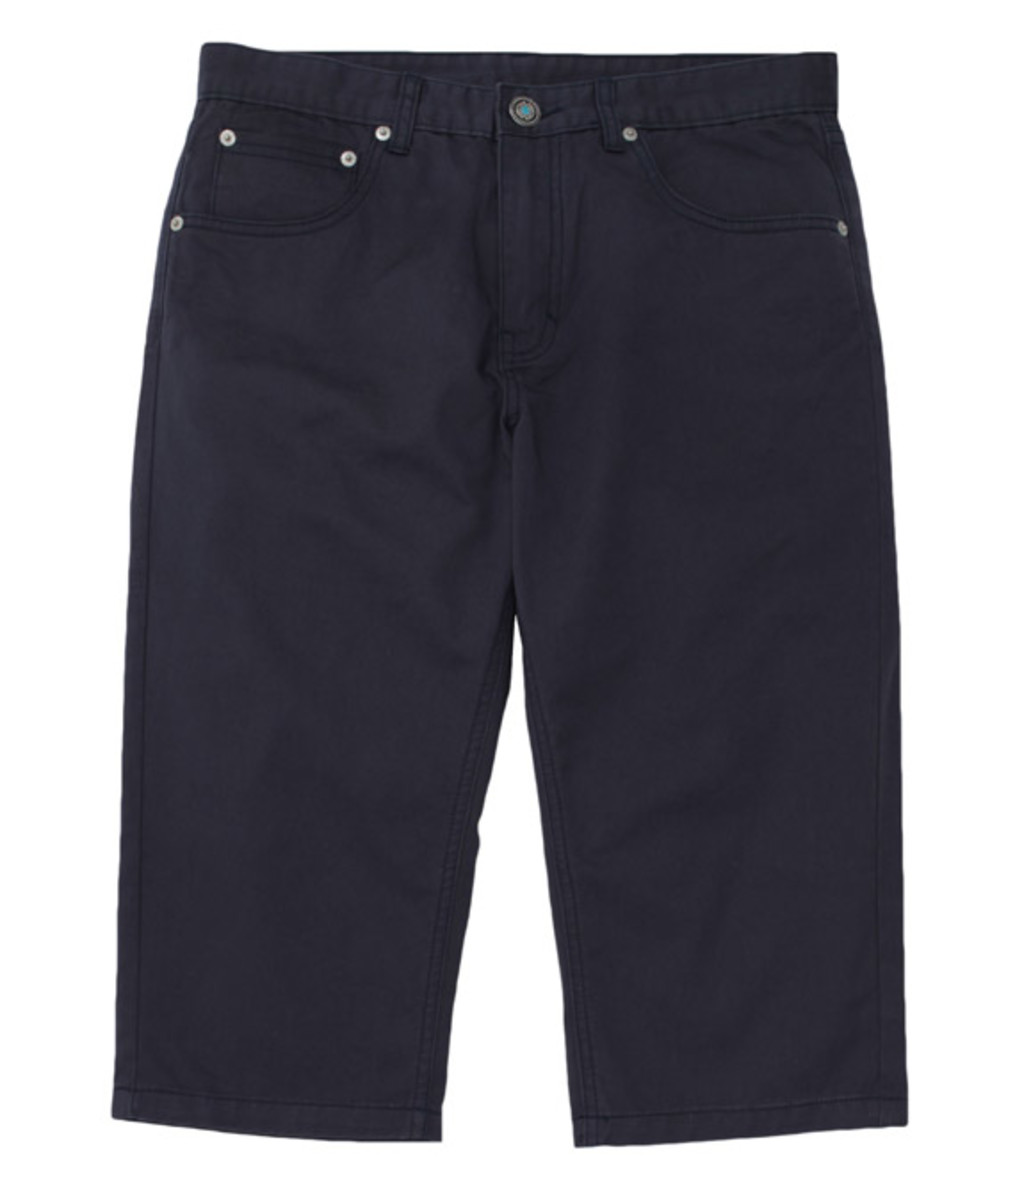 clot-tribesmen-fall-winter-2012-collection-series-2-bottoms-33